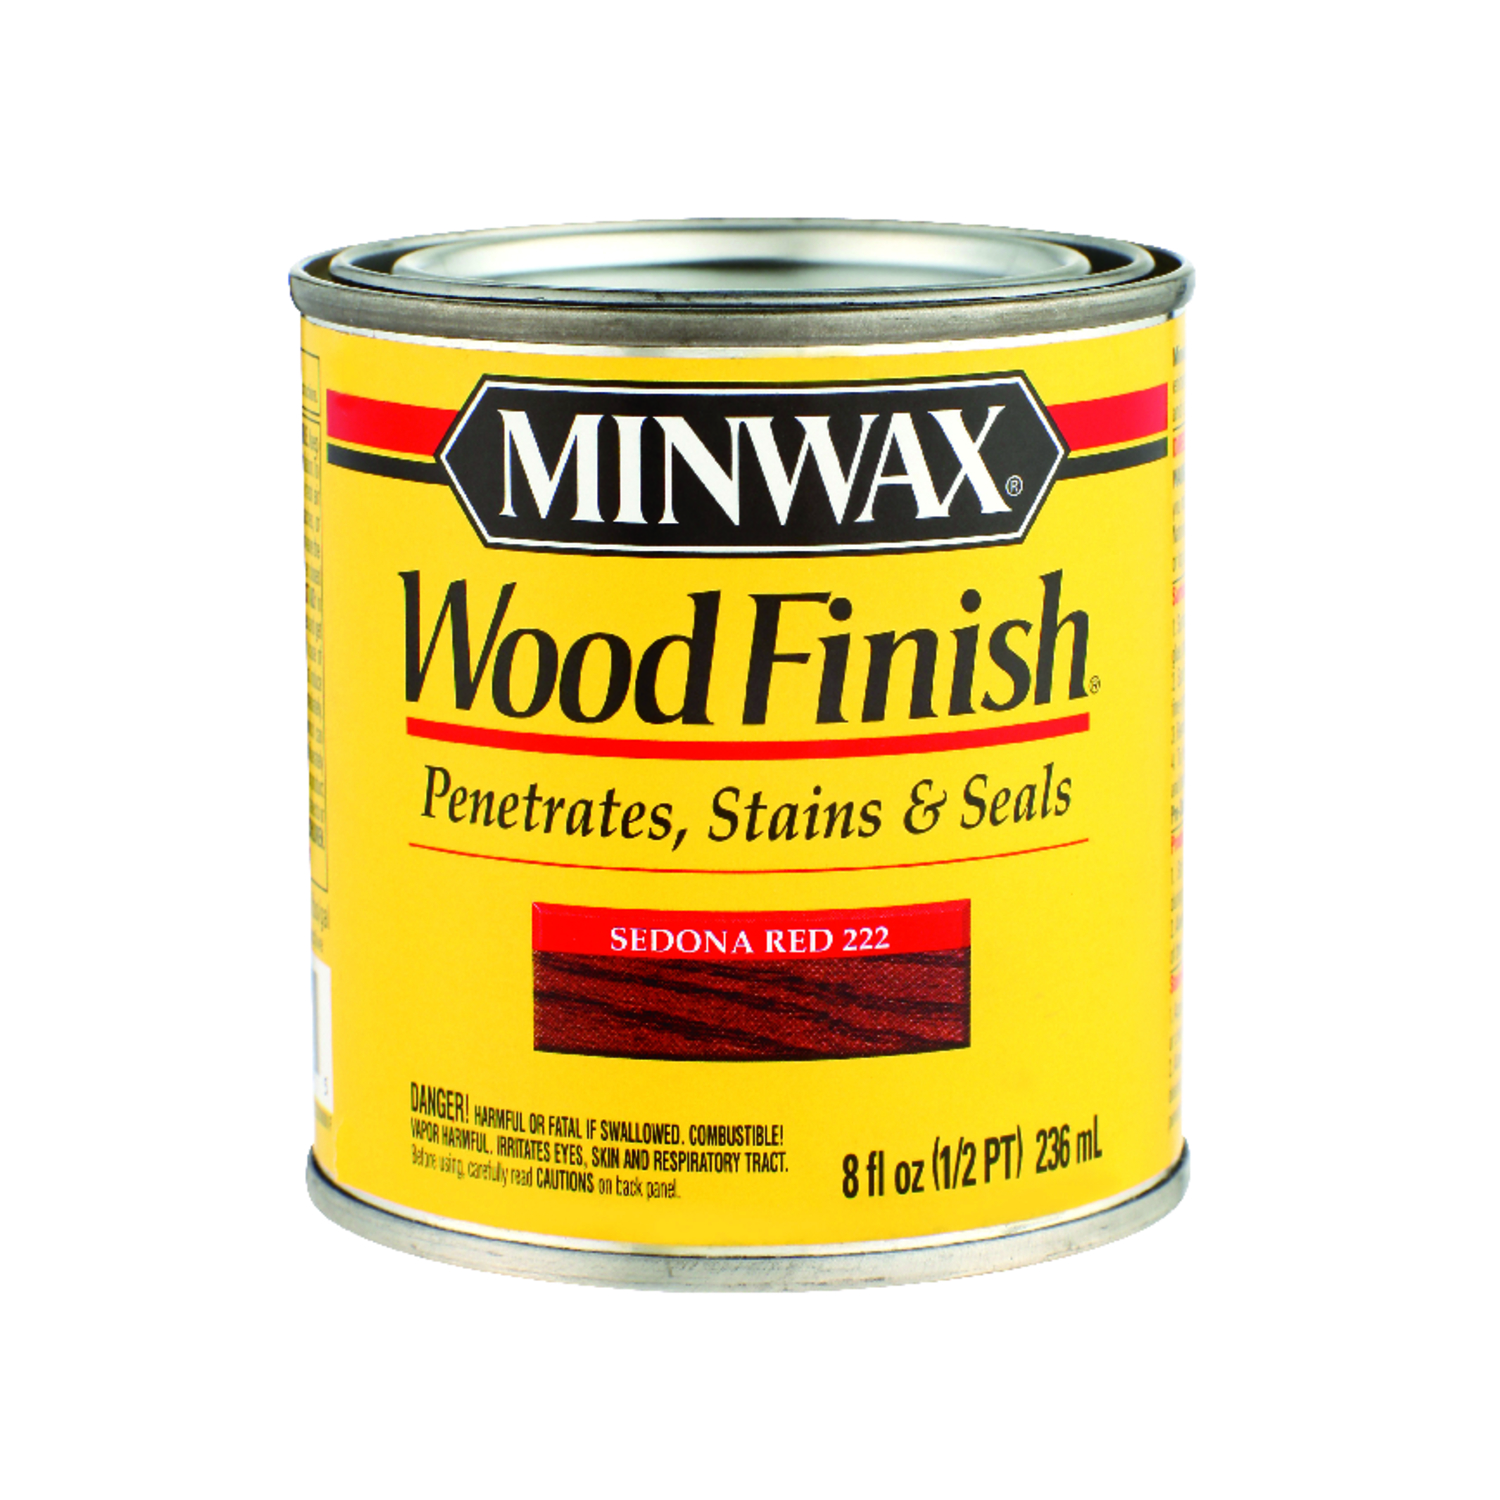 Minwax  Wood Finish  Transparent  Sedona Red  Deep  Oil-Based  Wood Stain  1/2 pt.